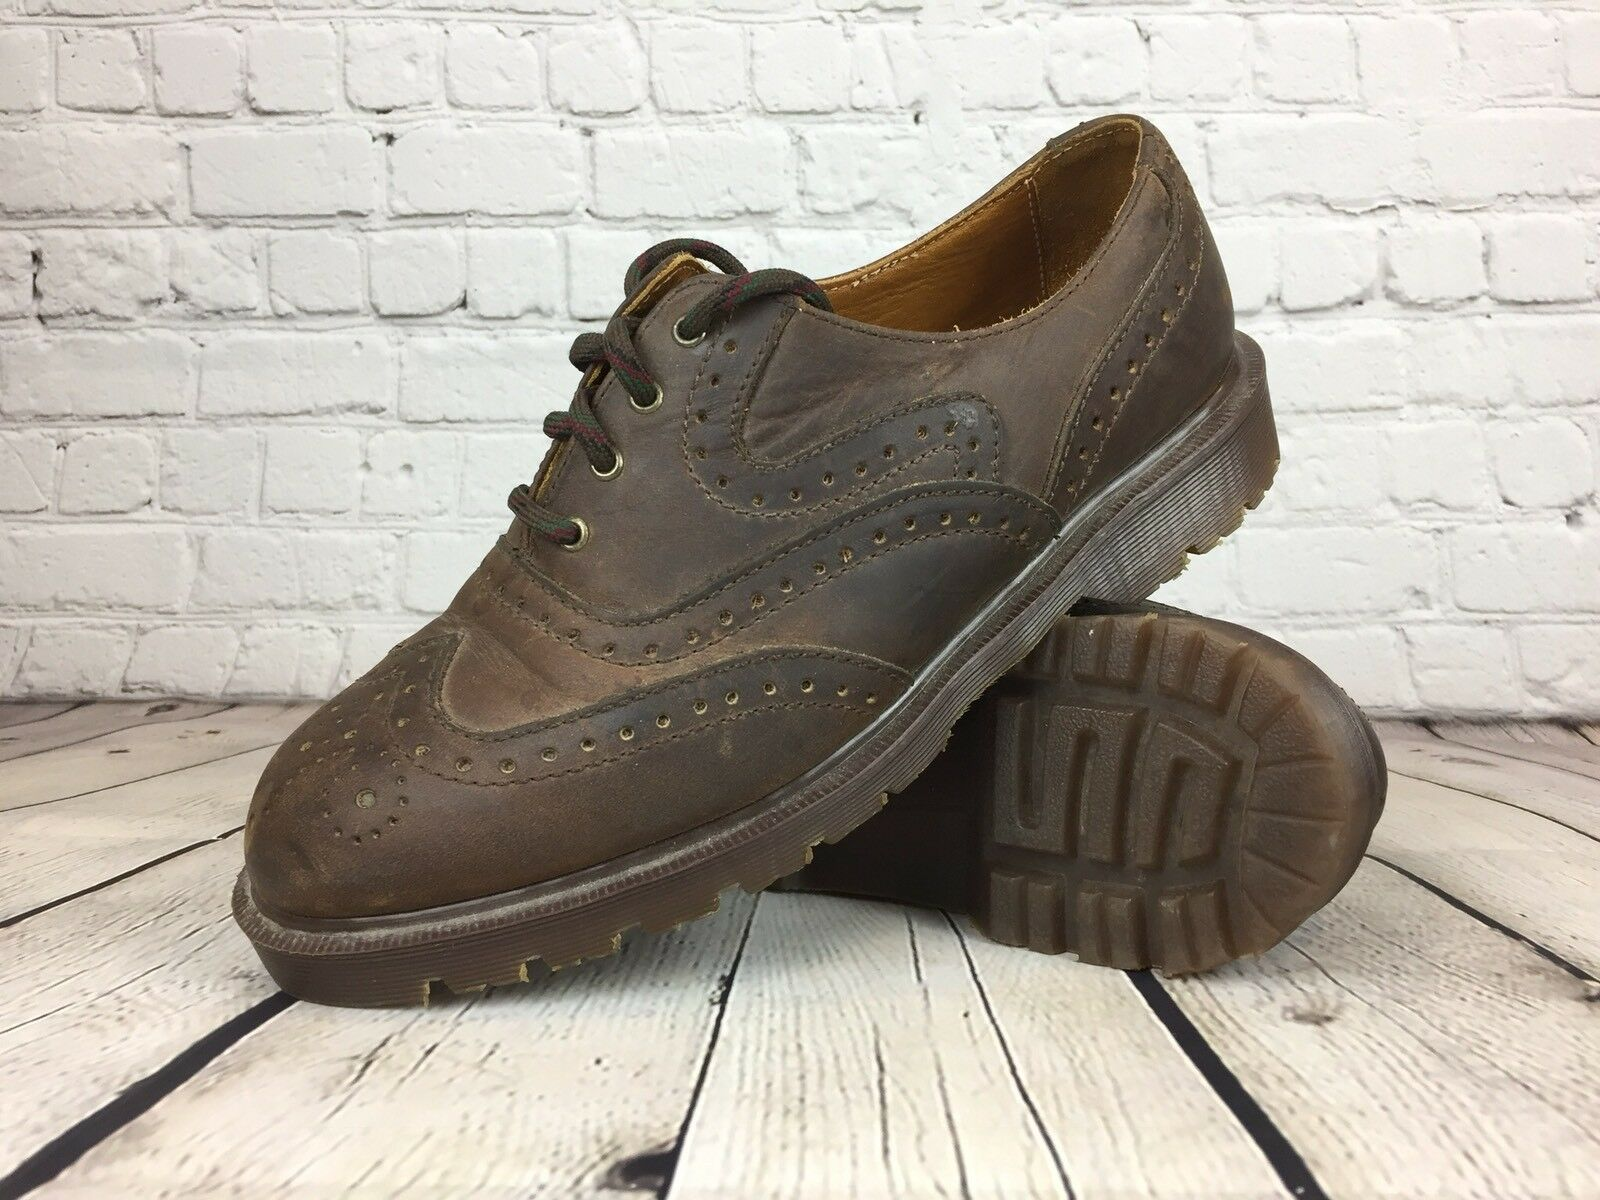 Dr. Martens Air Cushion Brown Leather shoes Size 8 England  Model 8123